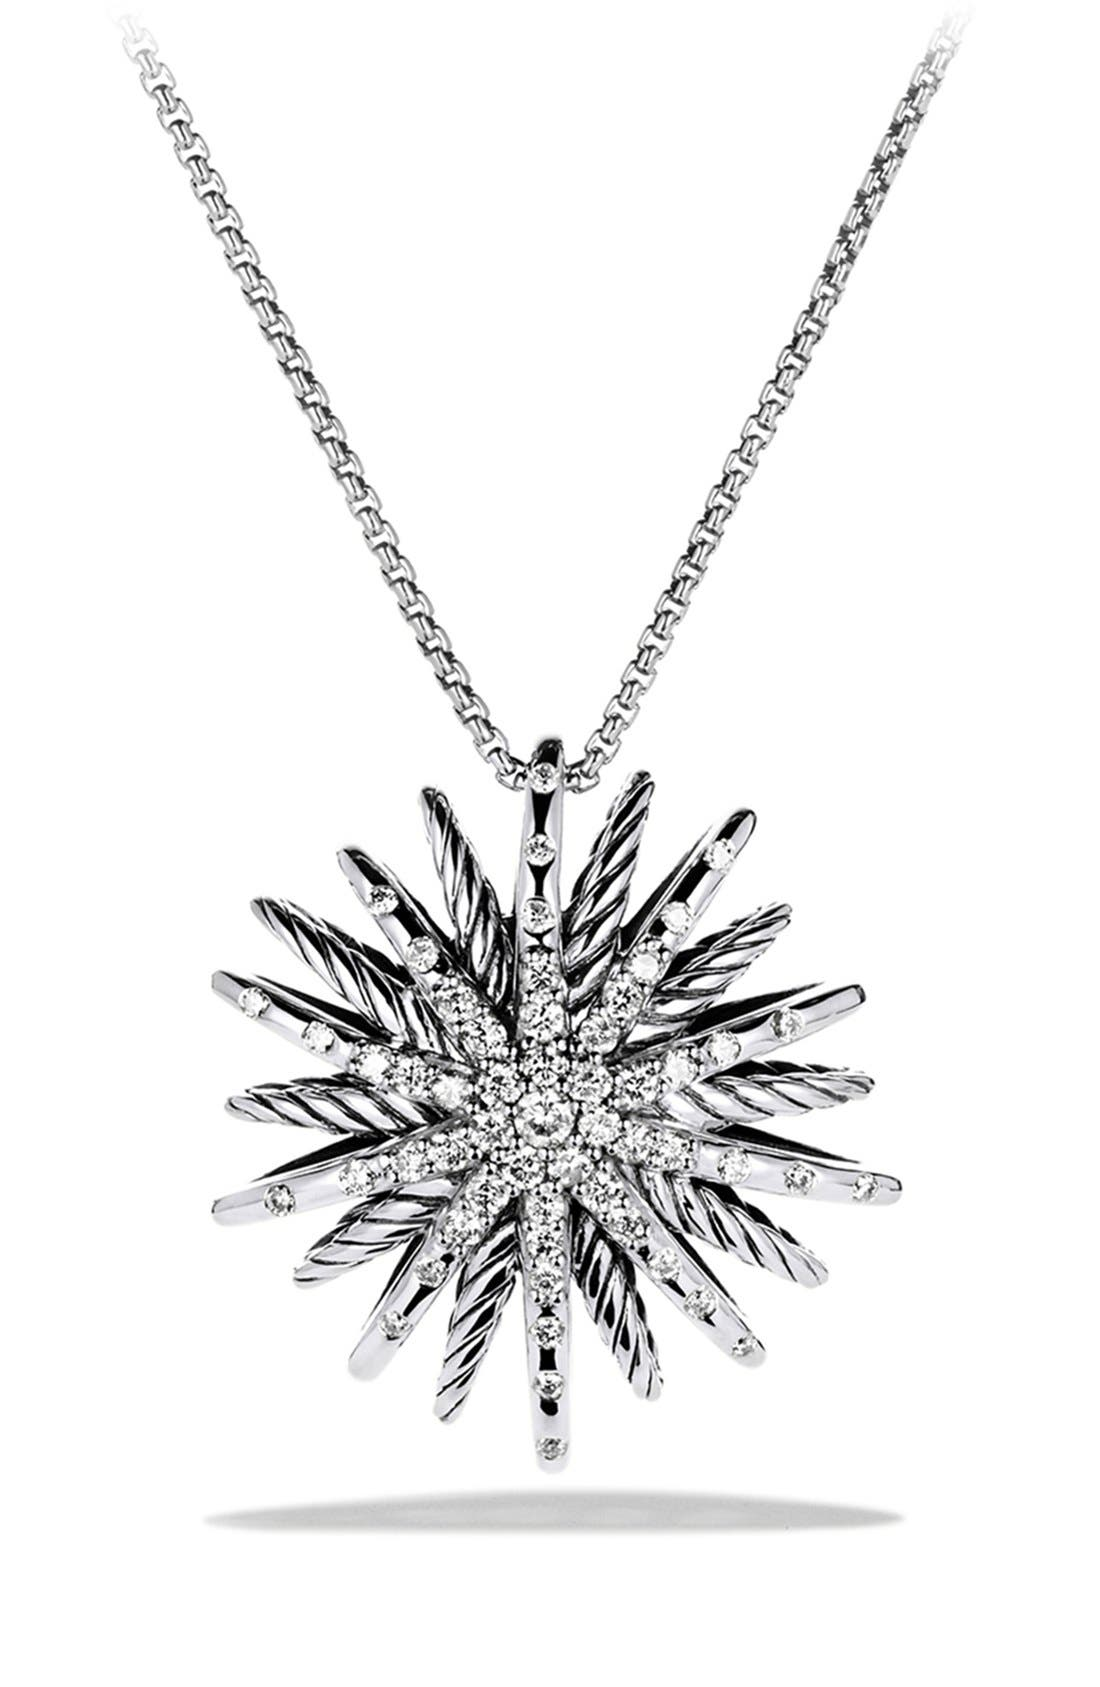 'Starburst' Medium Pendant with Diamonds on Chain,                             Main thumbnail 1, color,                             Diamond